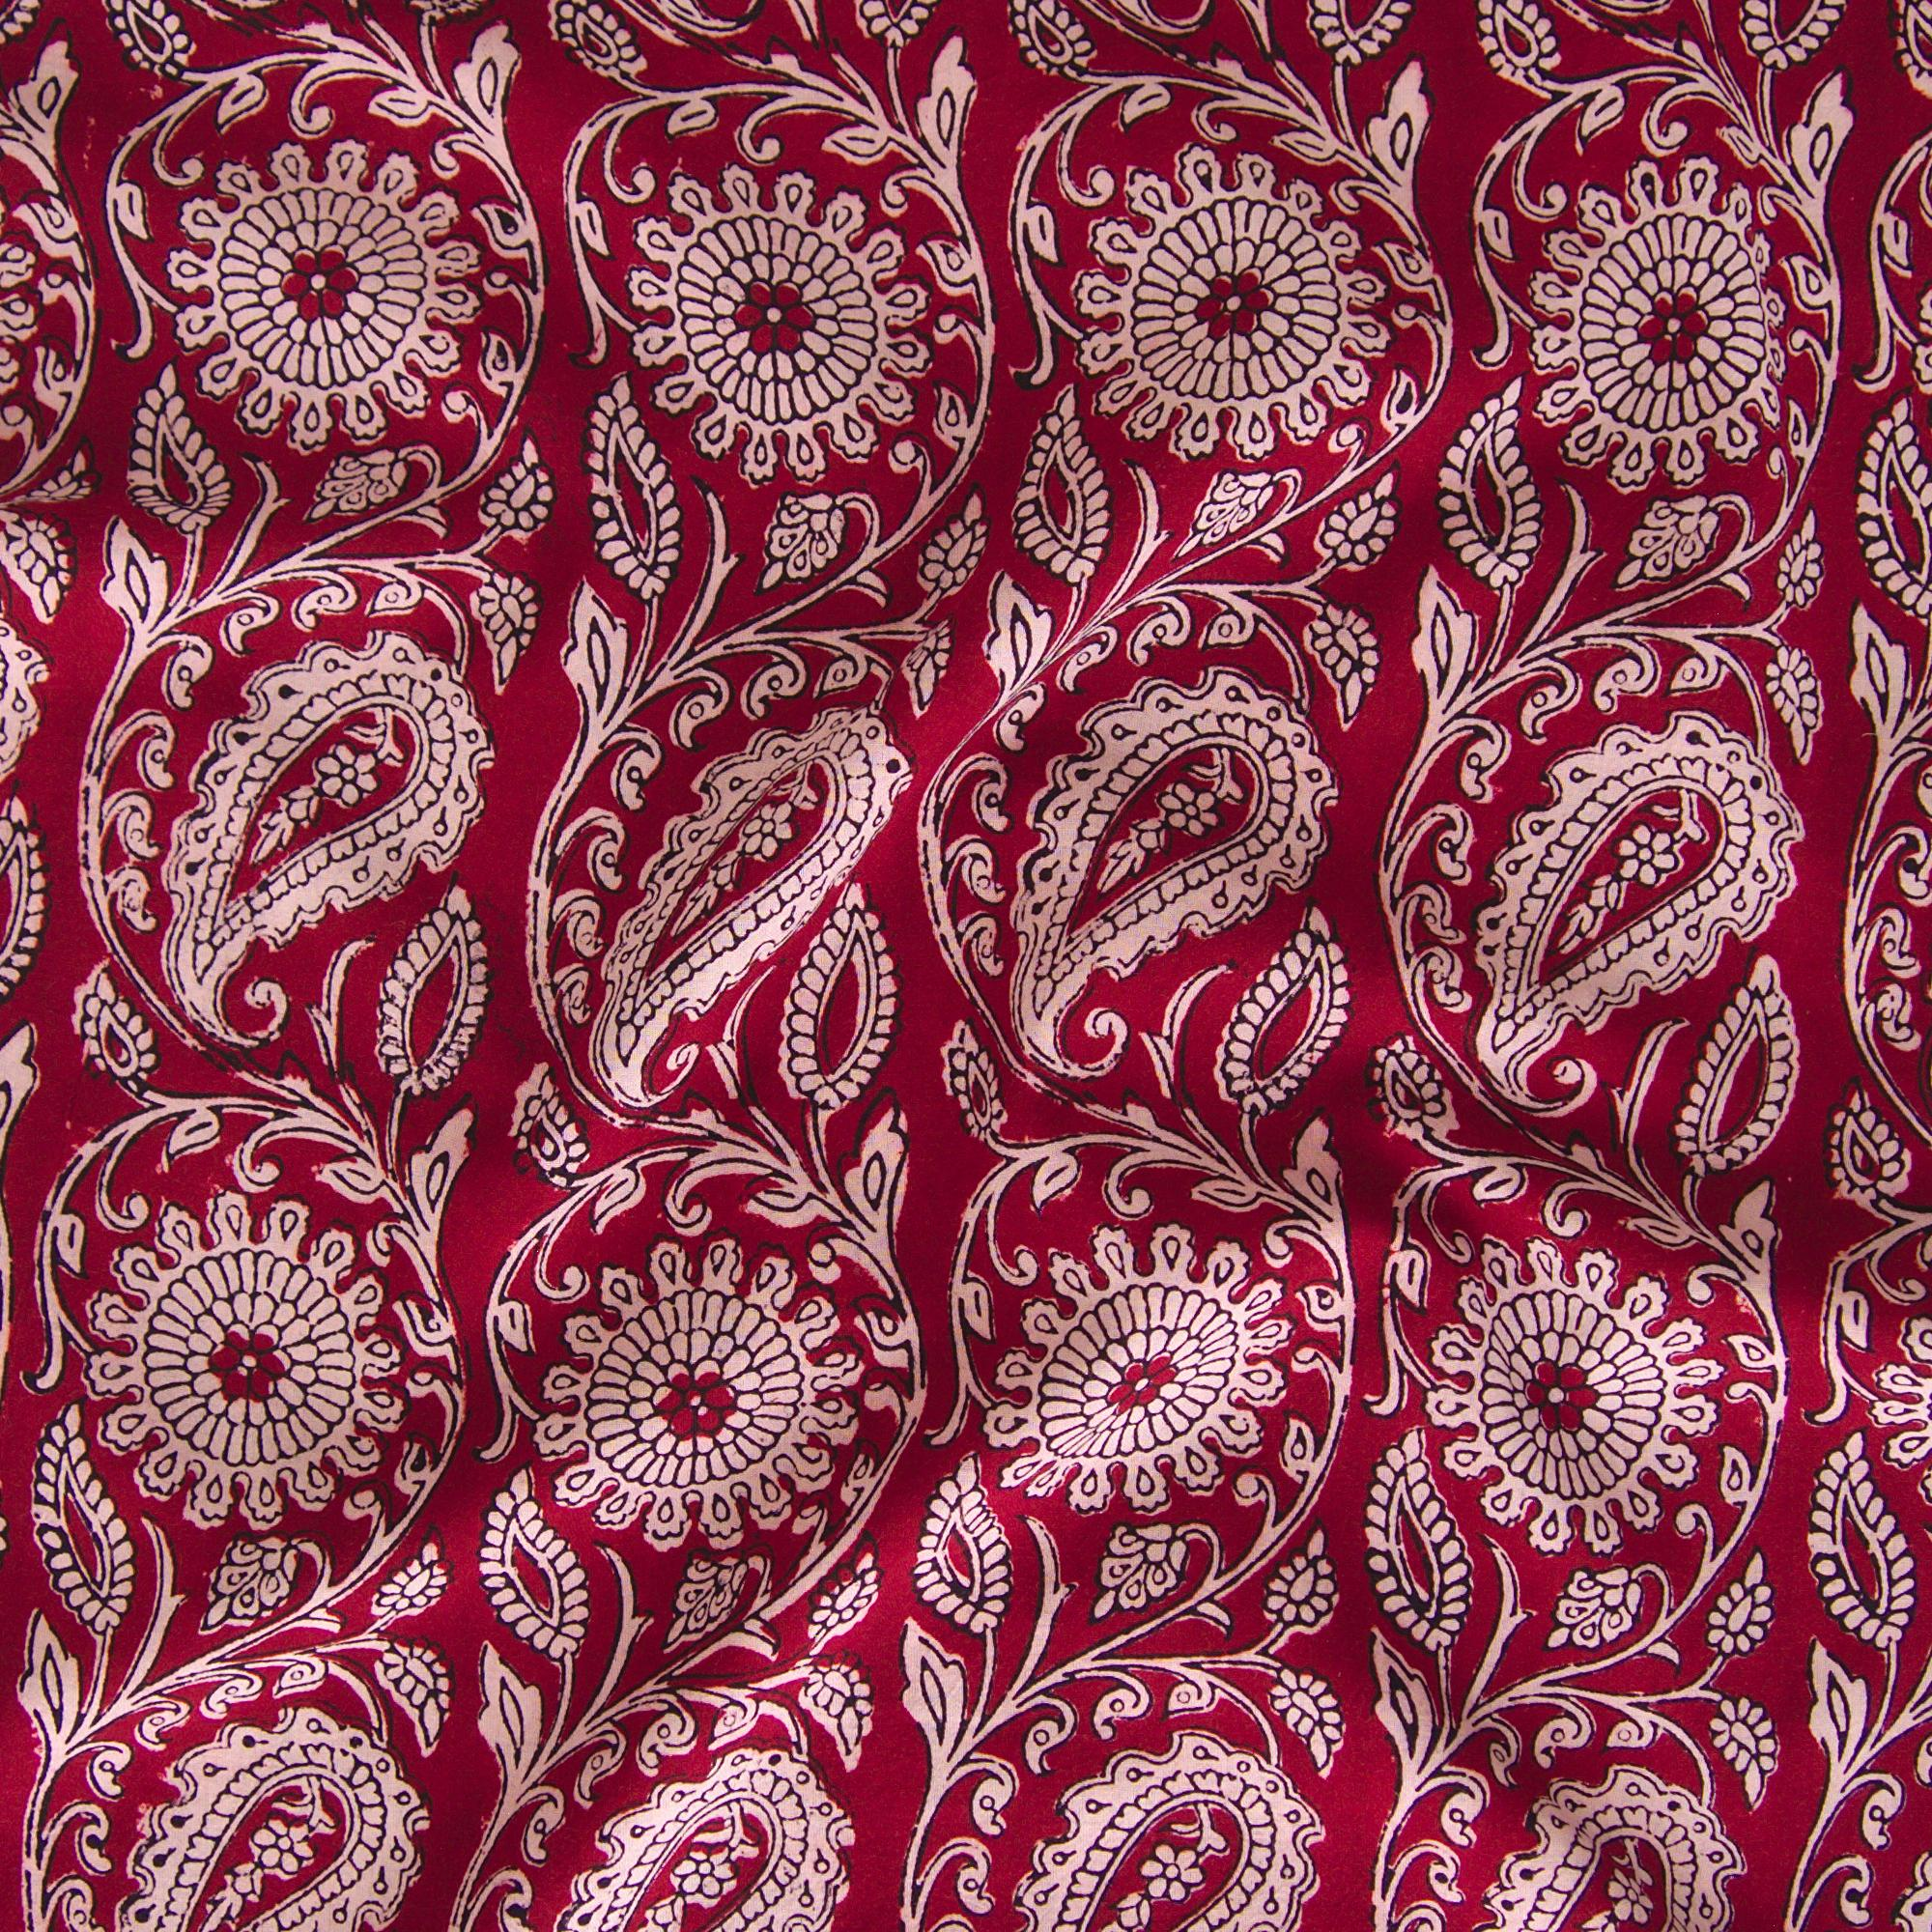 100% Block-Printed Cotton Fabric From India - Sichuan Pepper Design - Iron Rust Black & Alizarin Red Dyes - Contrast - Live